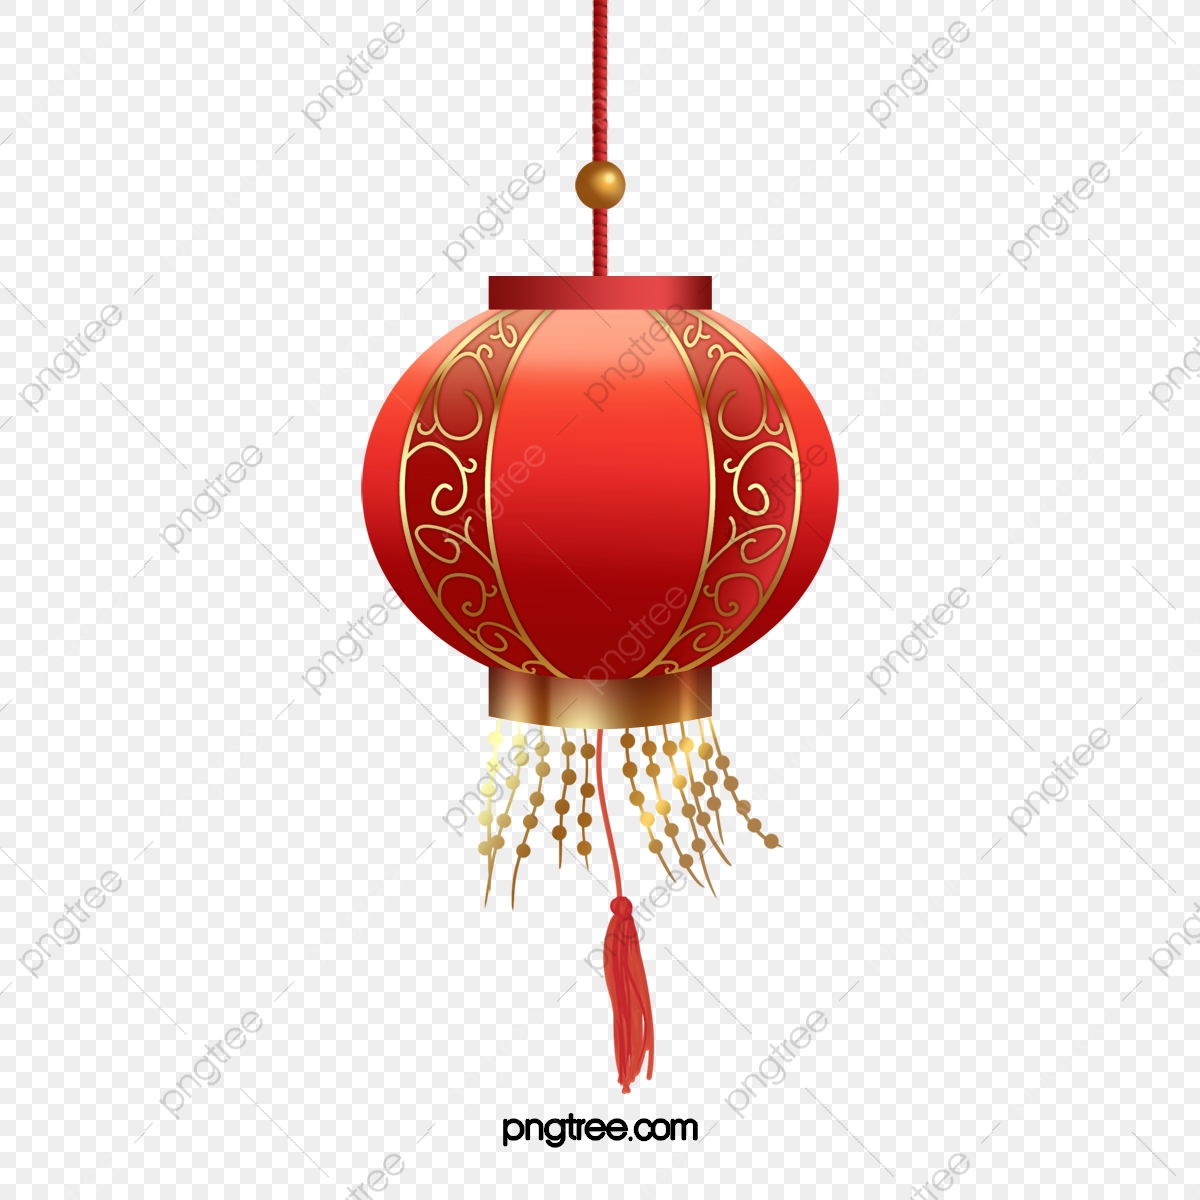 new year png vector psd and clipart with transparent background for free download pngtree https pngtree com freepng chinese new year festive red lantern 5312977 html